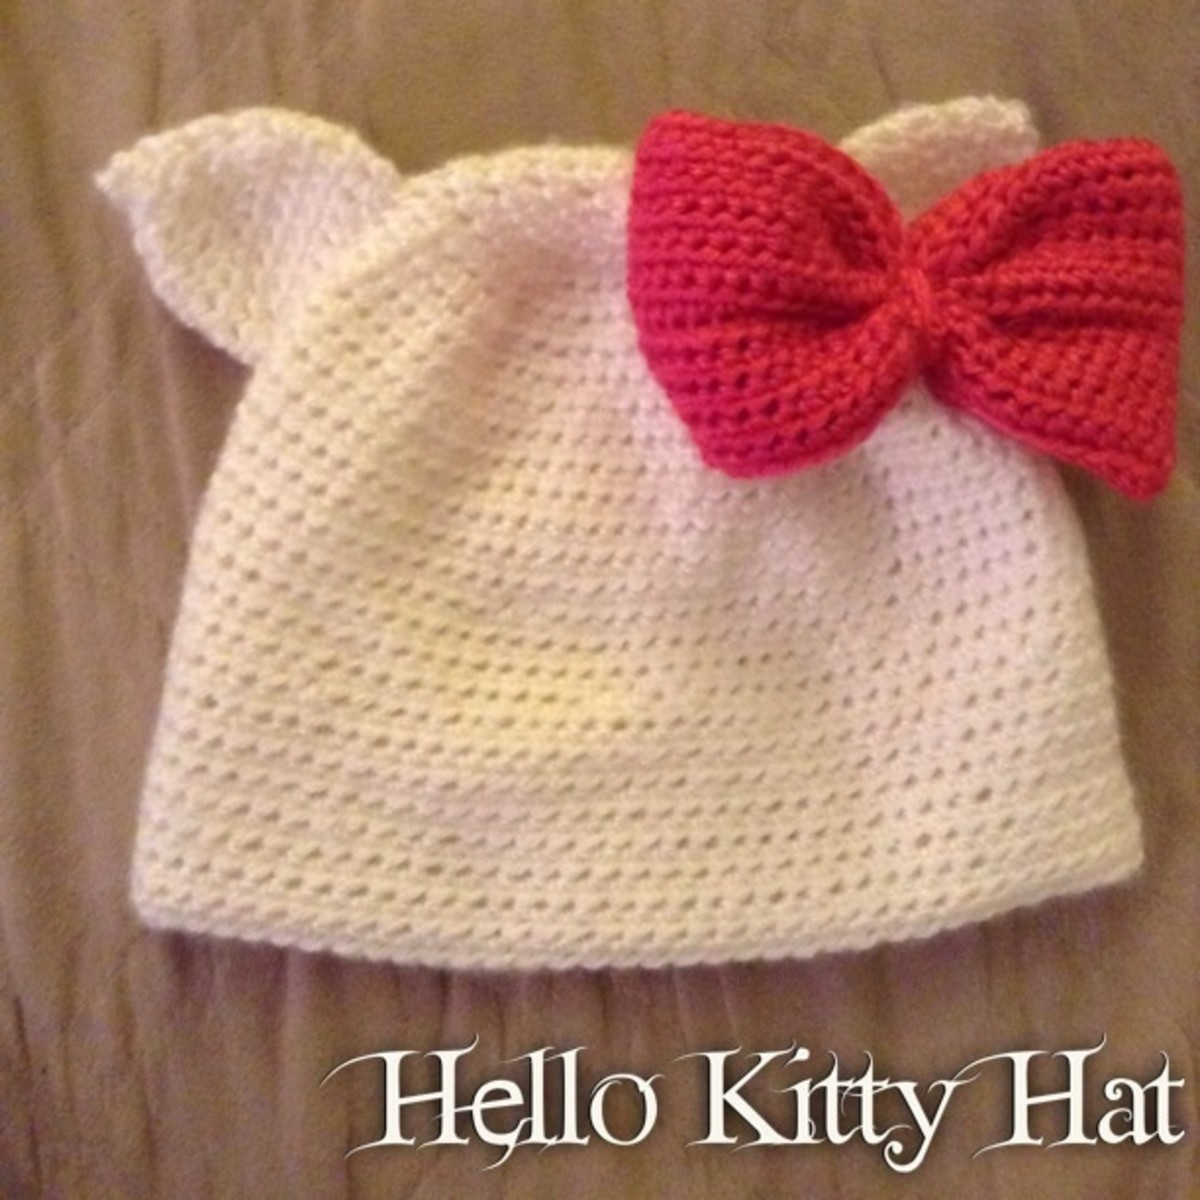 How to crochet a hello kitty hat or headband